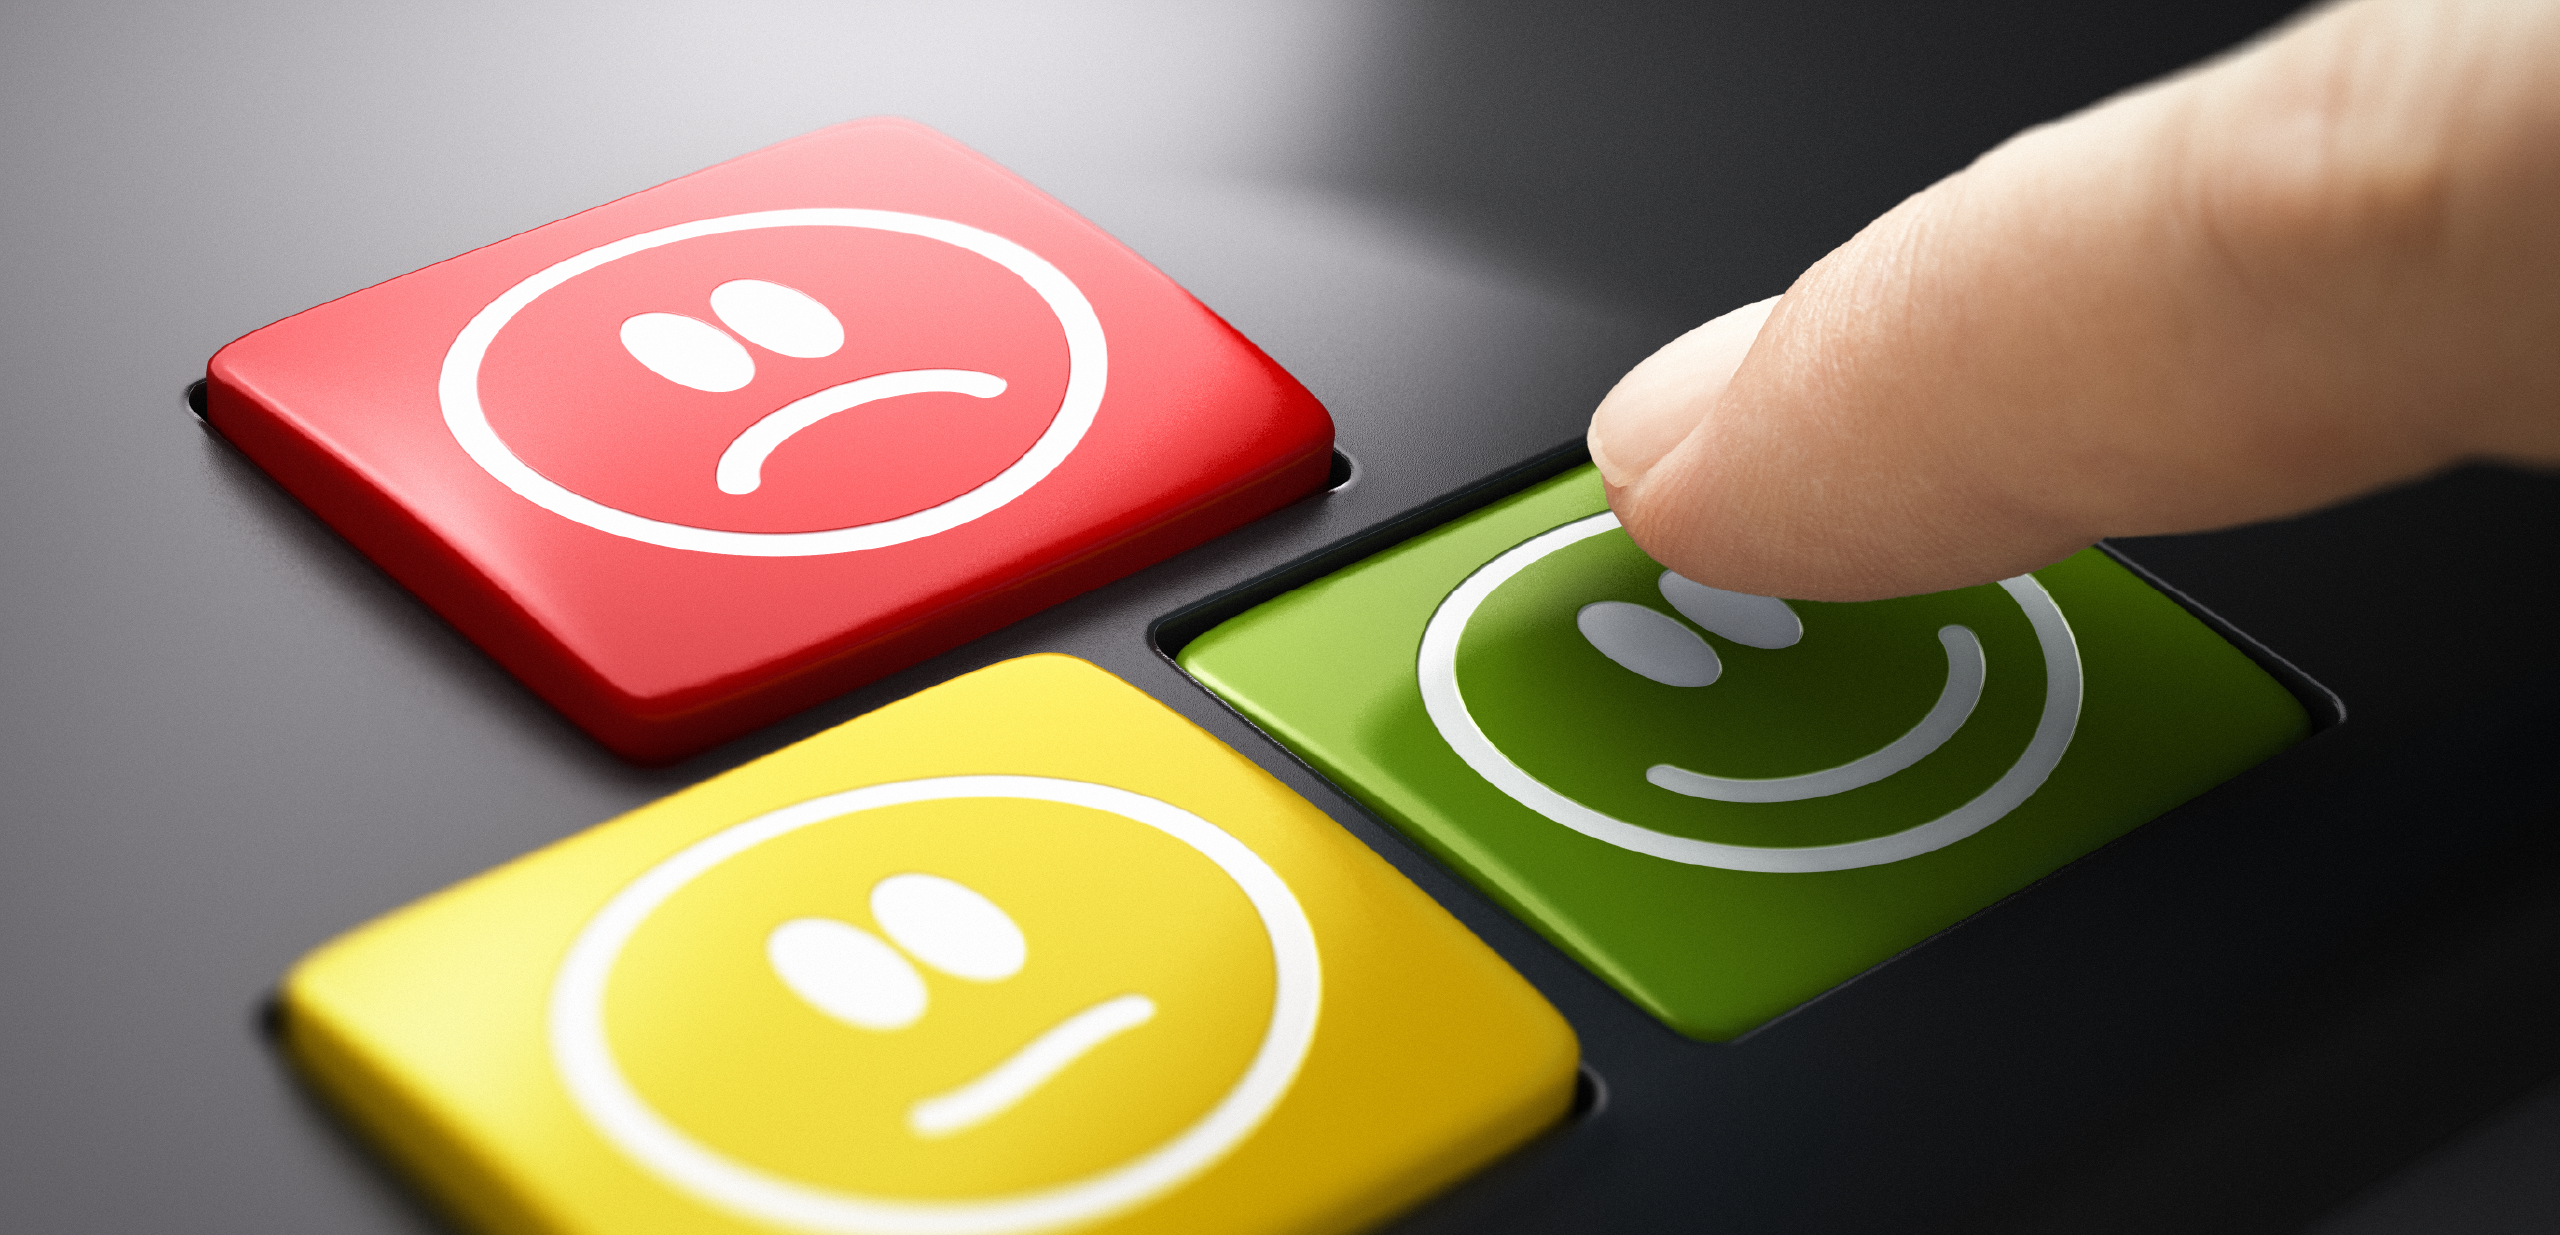 What Features Should a Good CRM Software Have?